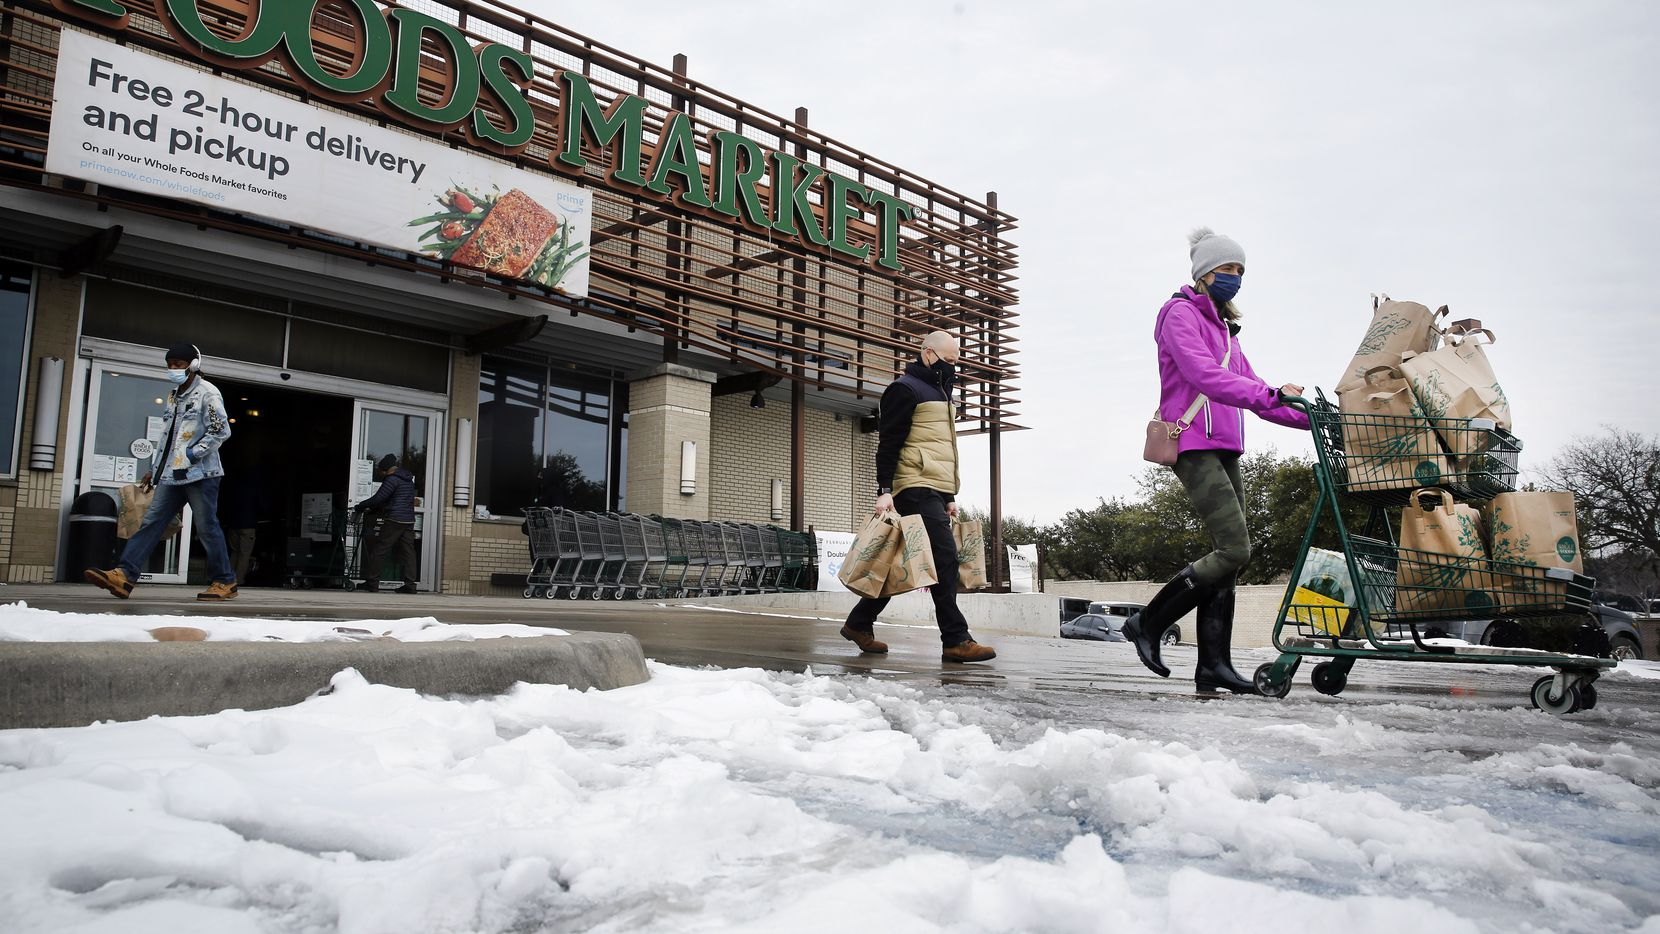 Shoppers push heir carts through the slush at Whole Foods Market in the Lakewood area of Dallas, Tuesday, February 16, 2021.